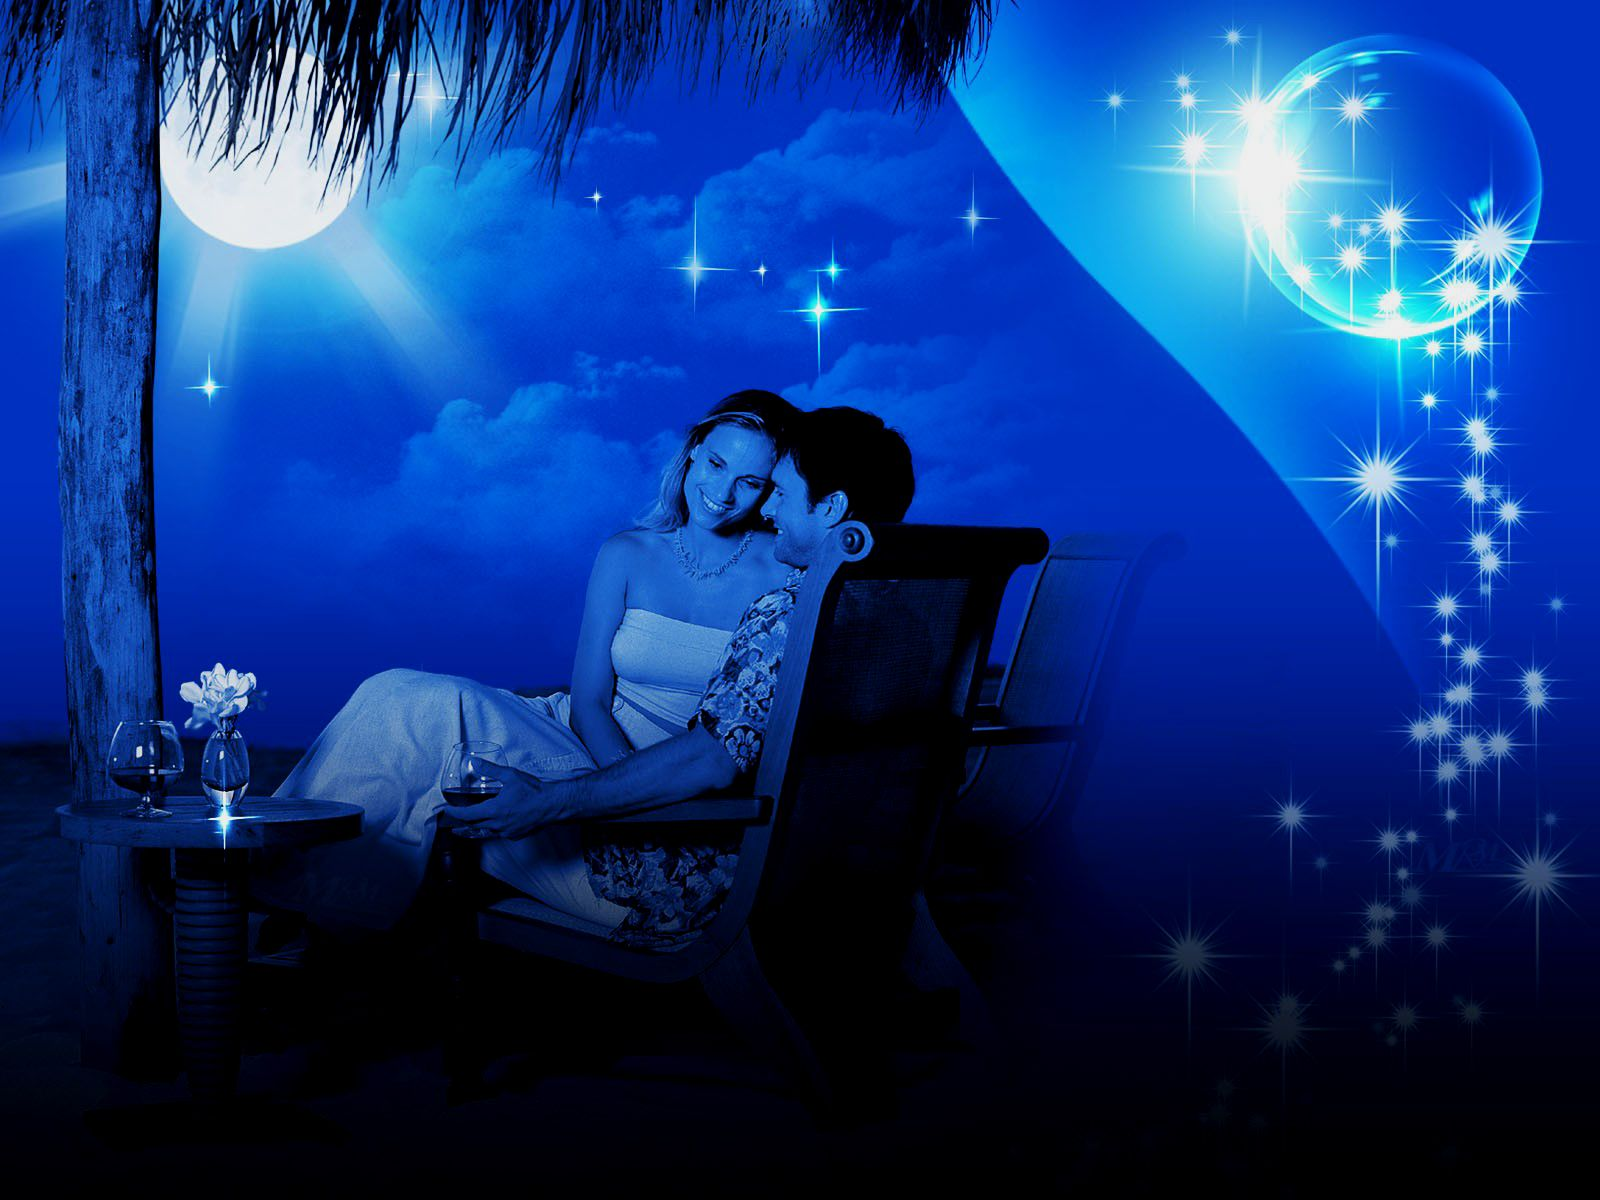 Wallpaper Love Couples HD Wallpapers